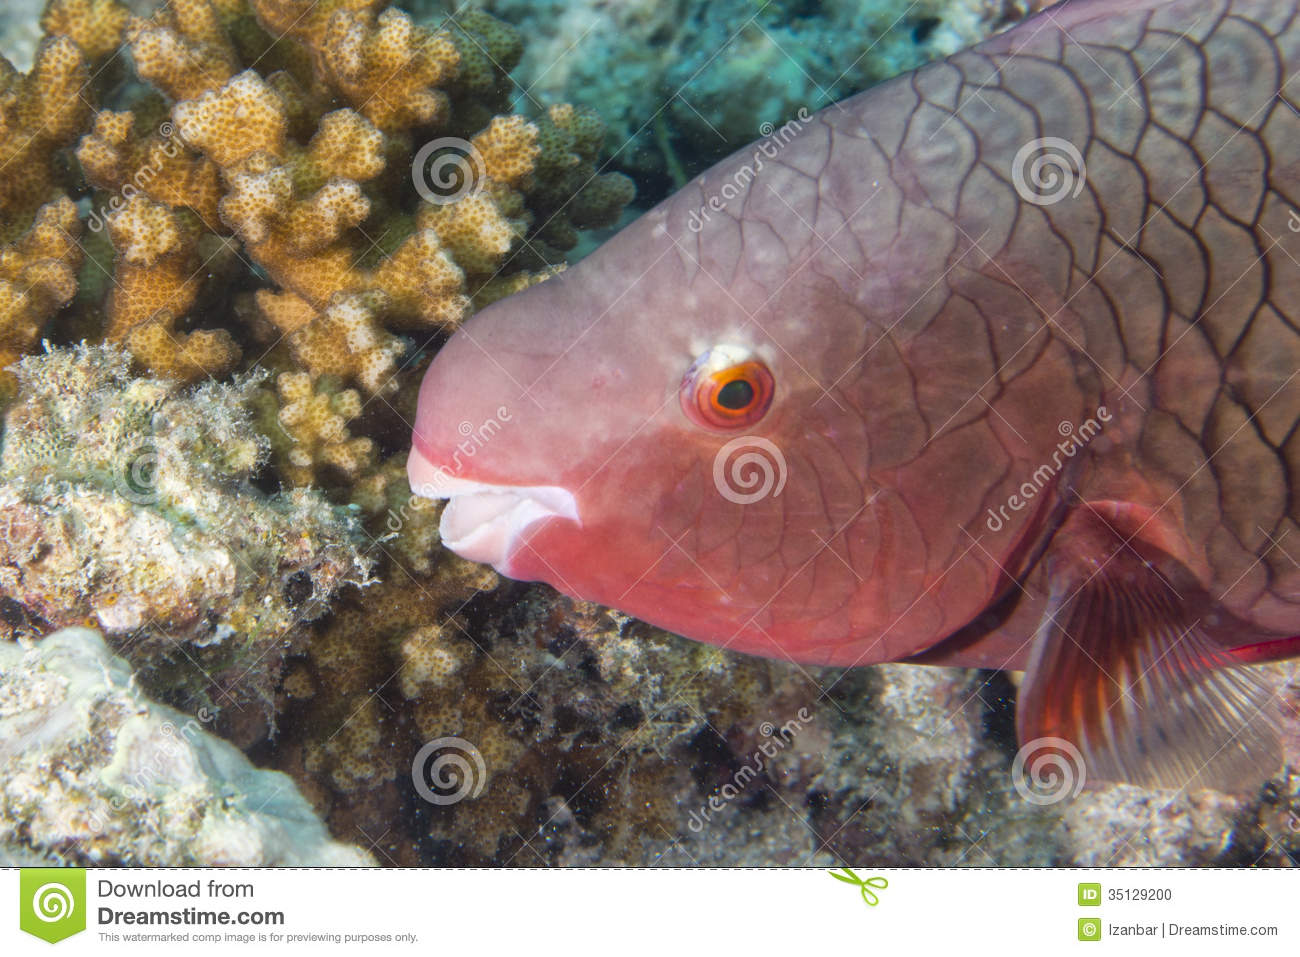 A pink parrot fish stock photo. Image of paradise, lagoon - 35129200